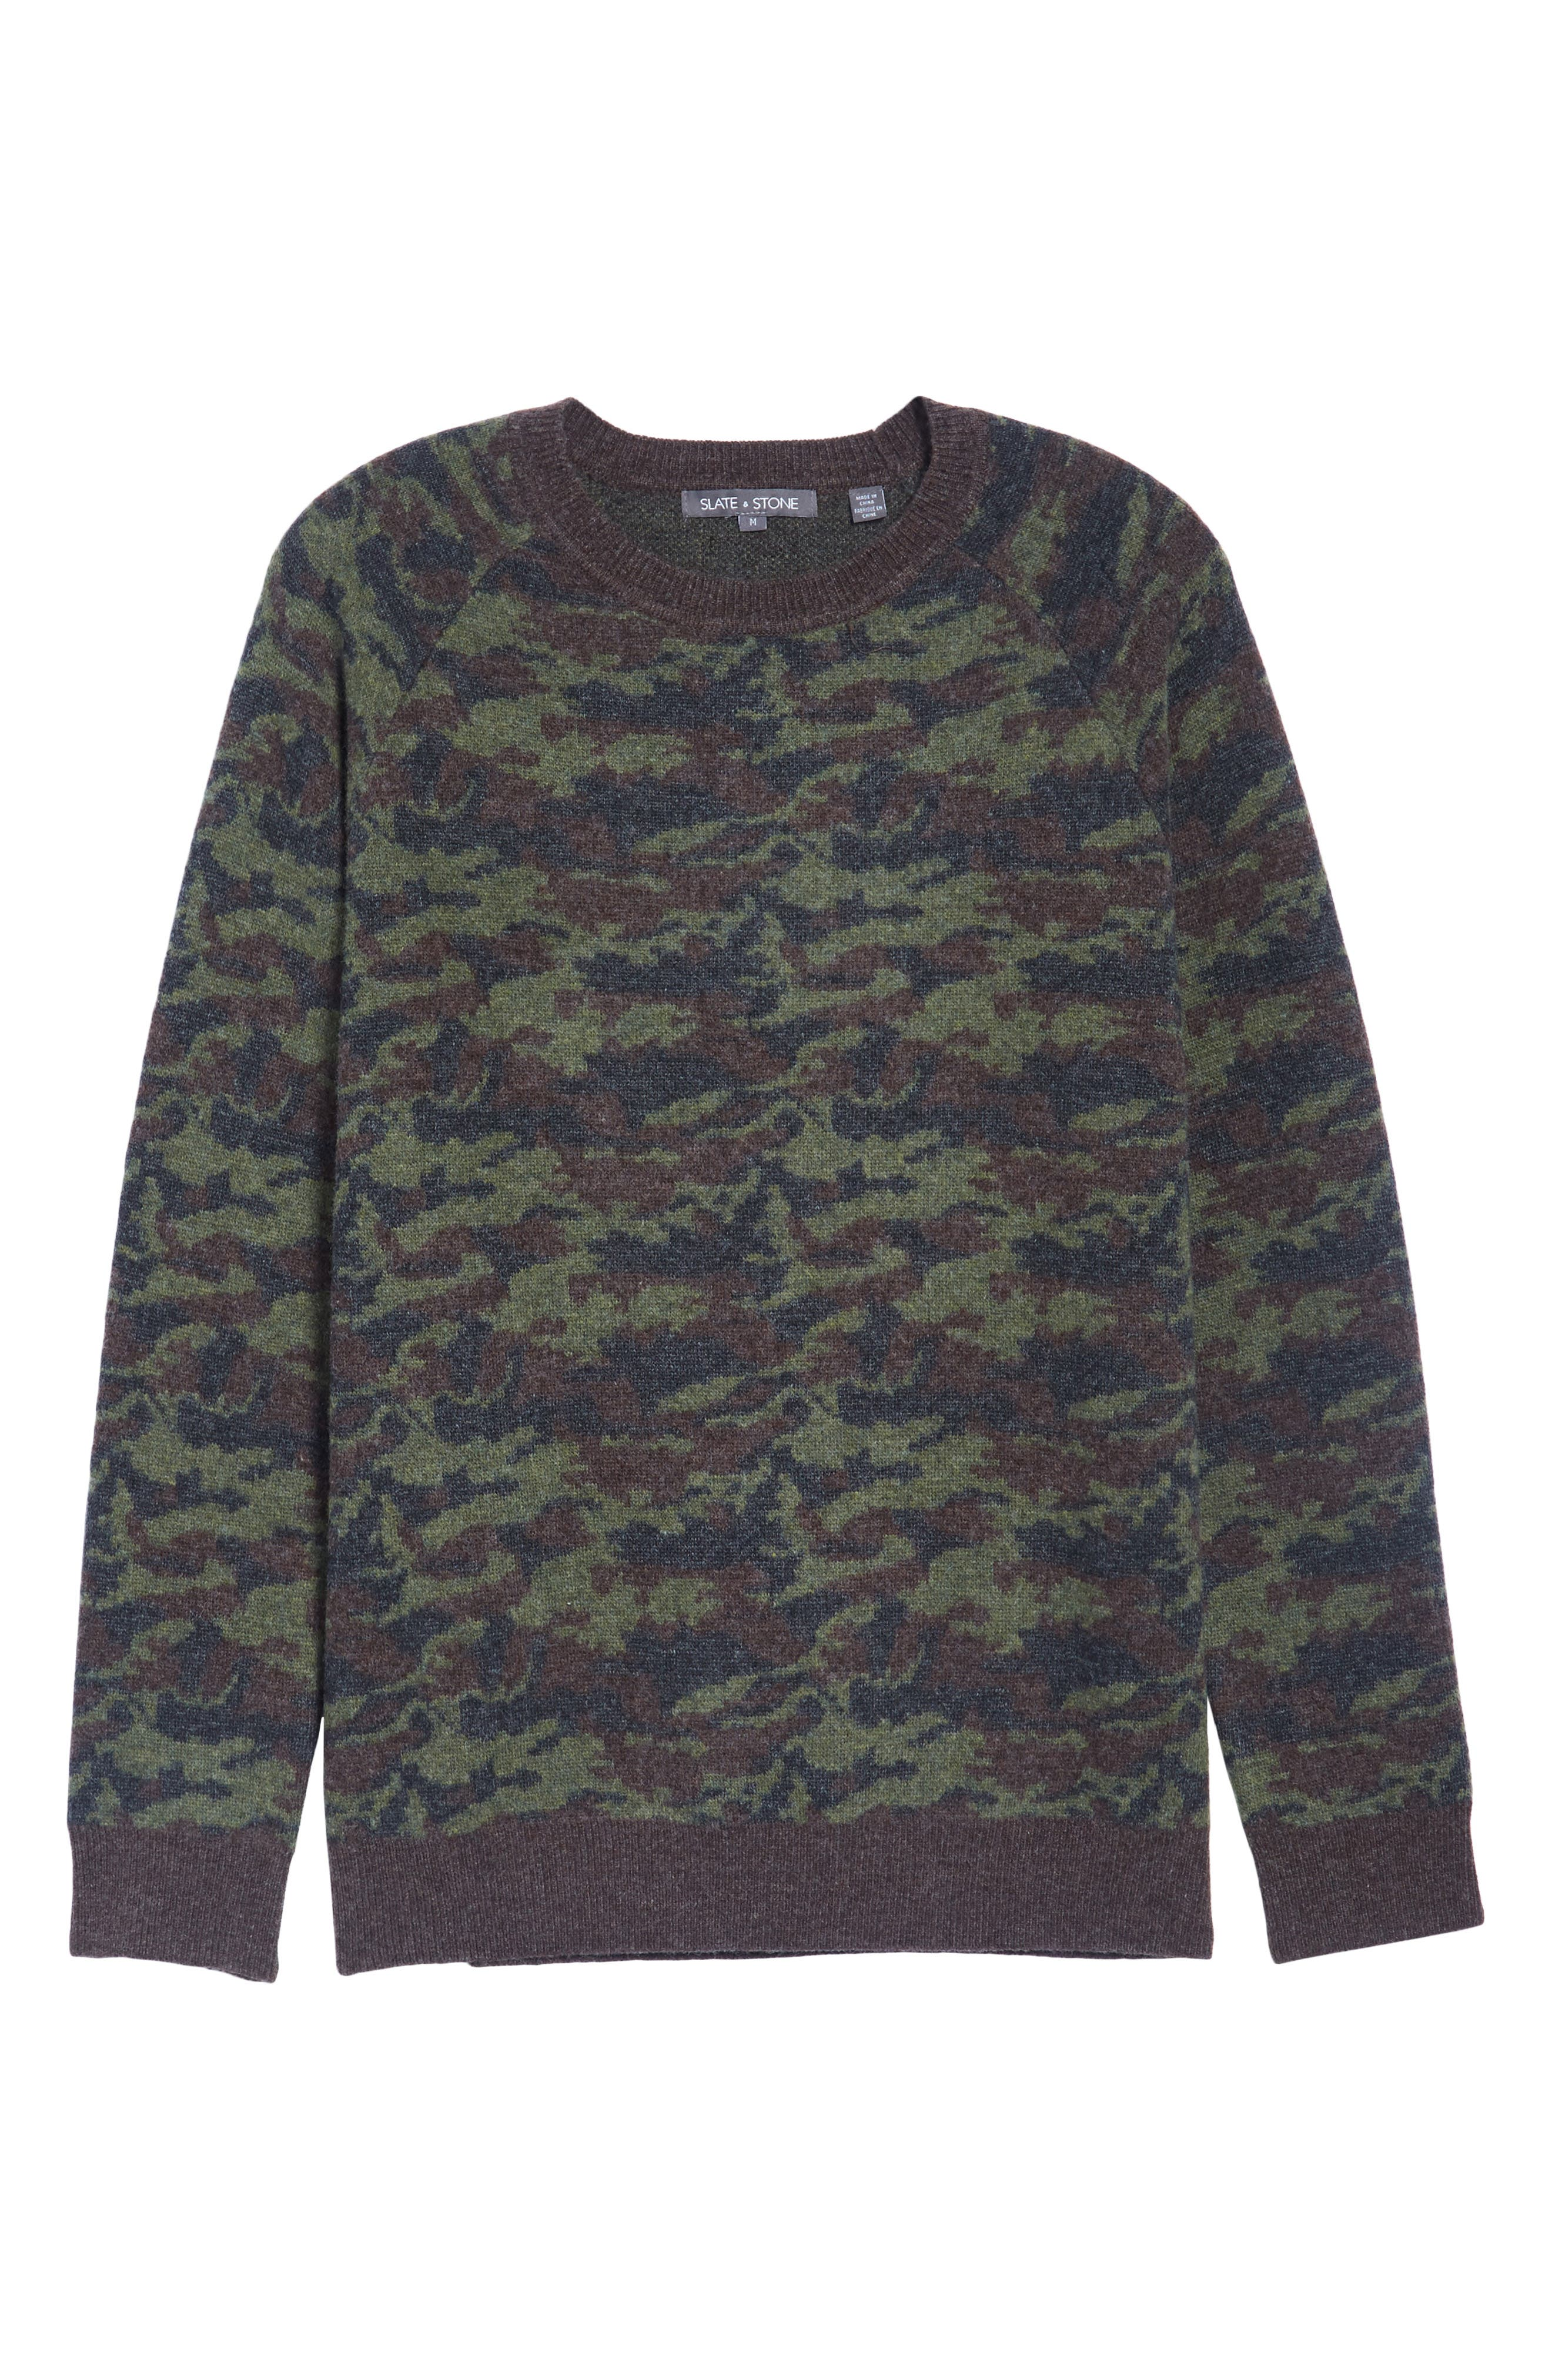 Wool Camo Sweater,                             Alternate thumbnail 6, color,                             357